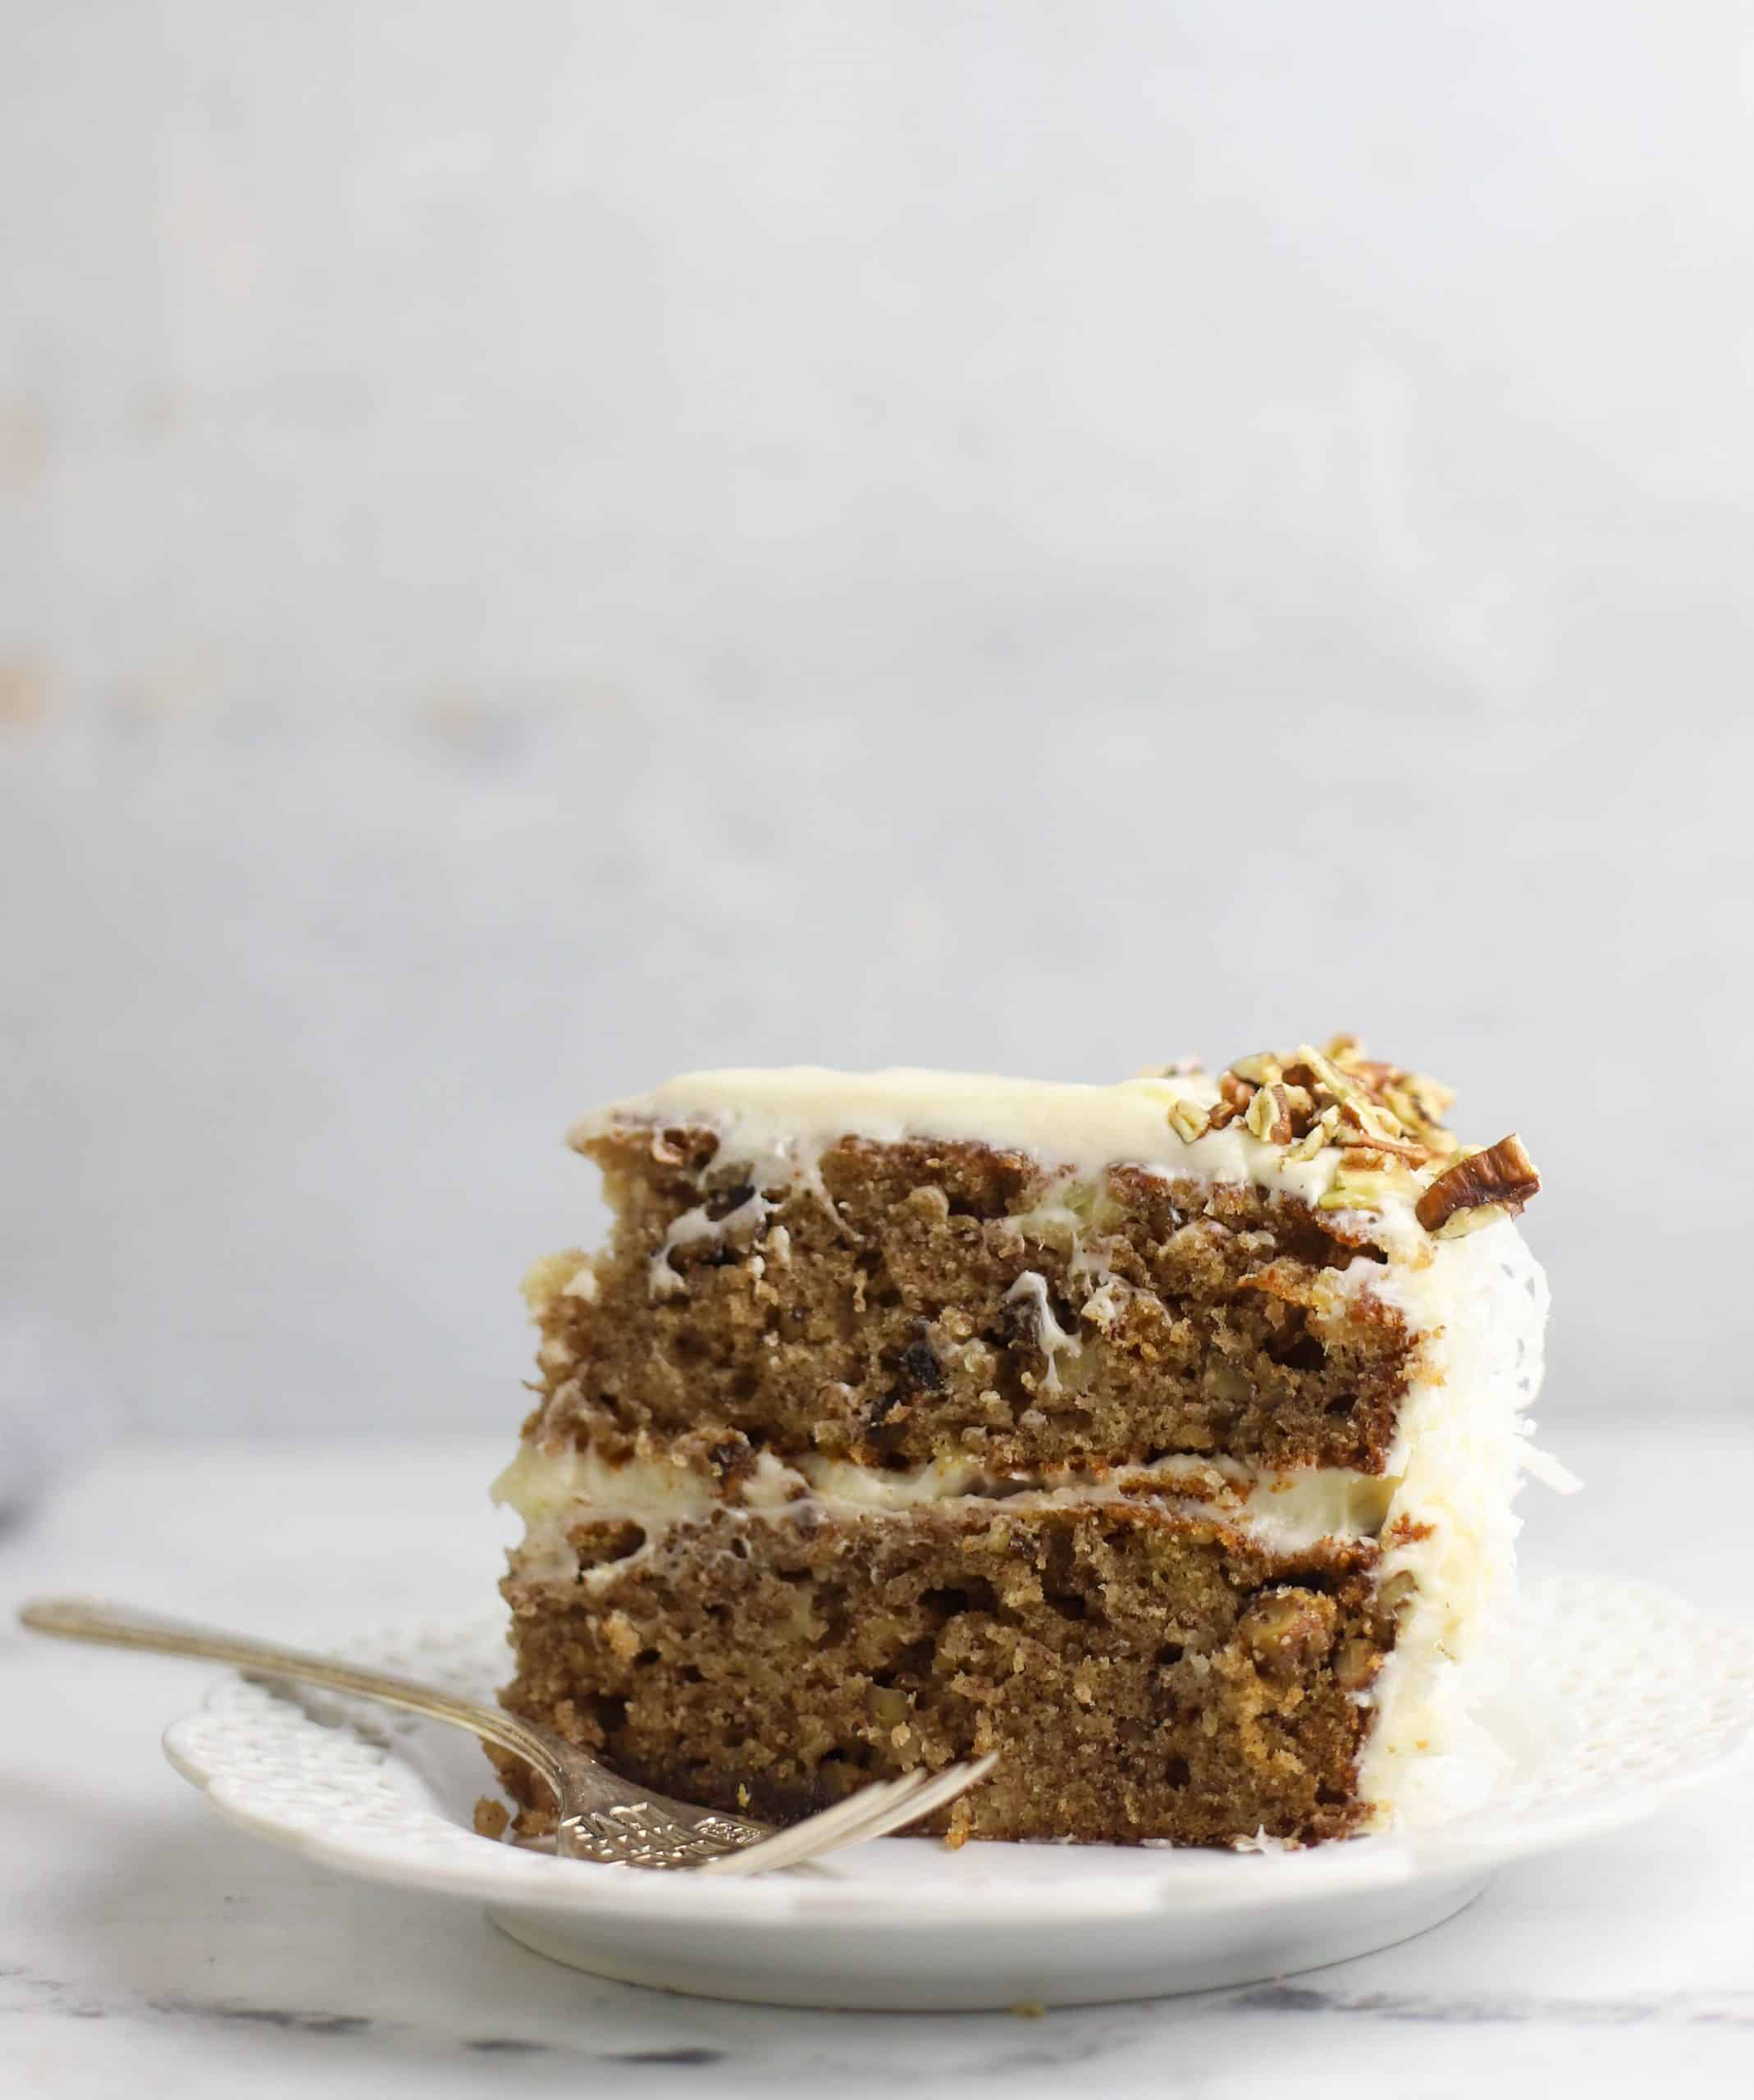 slice of hummingbird cake upright on a plate with a fork